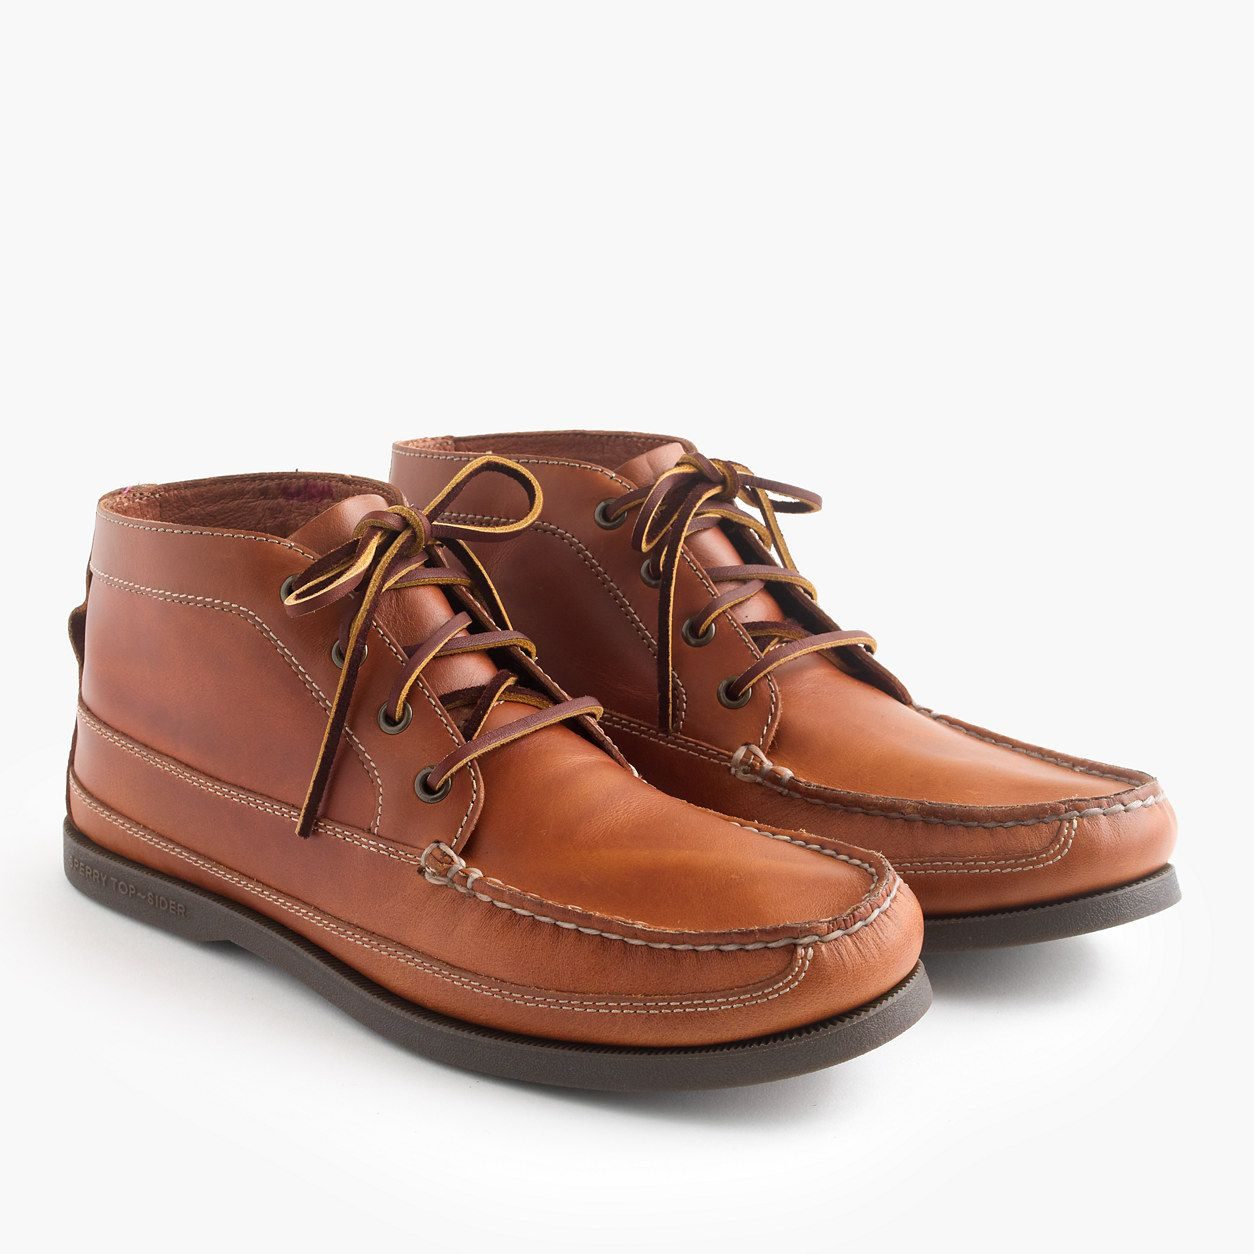 for J.Crew leather chukka boots